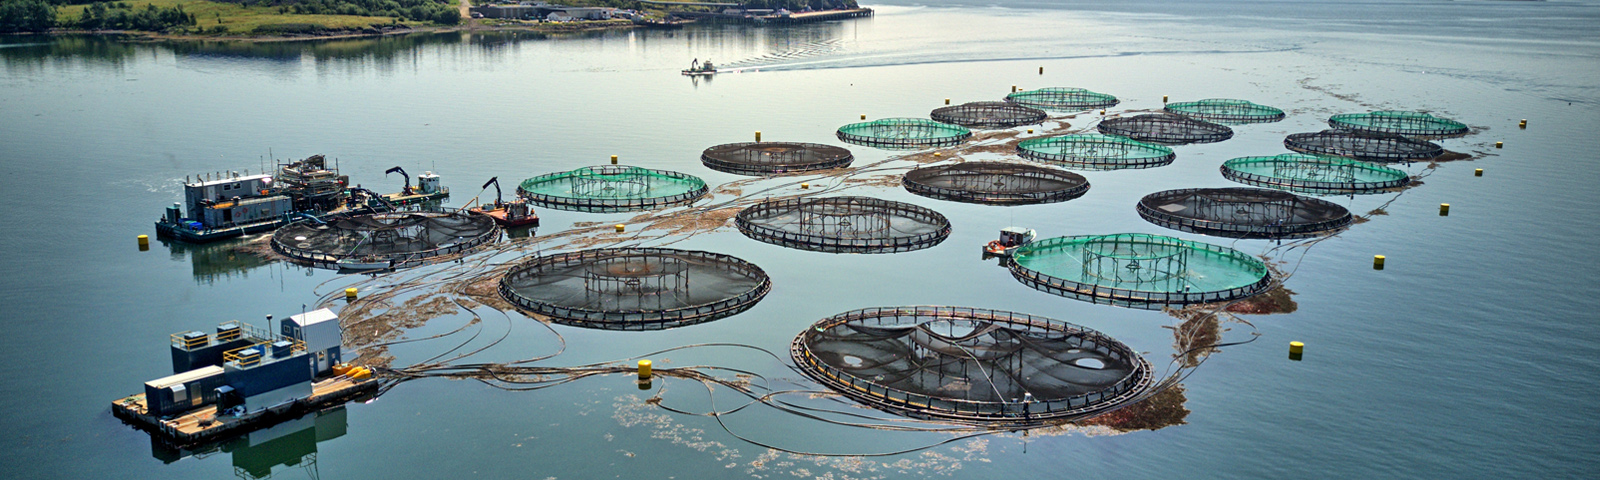 Can the ocean fix our broken food systems?